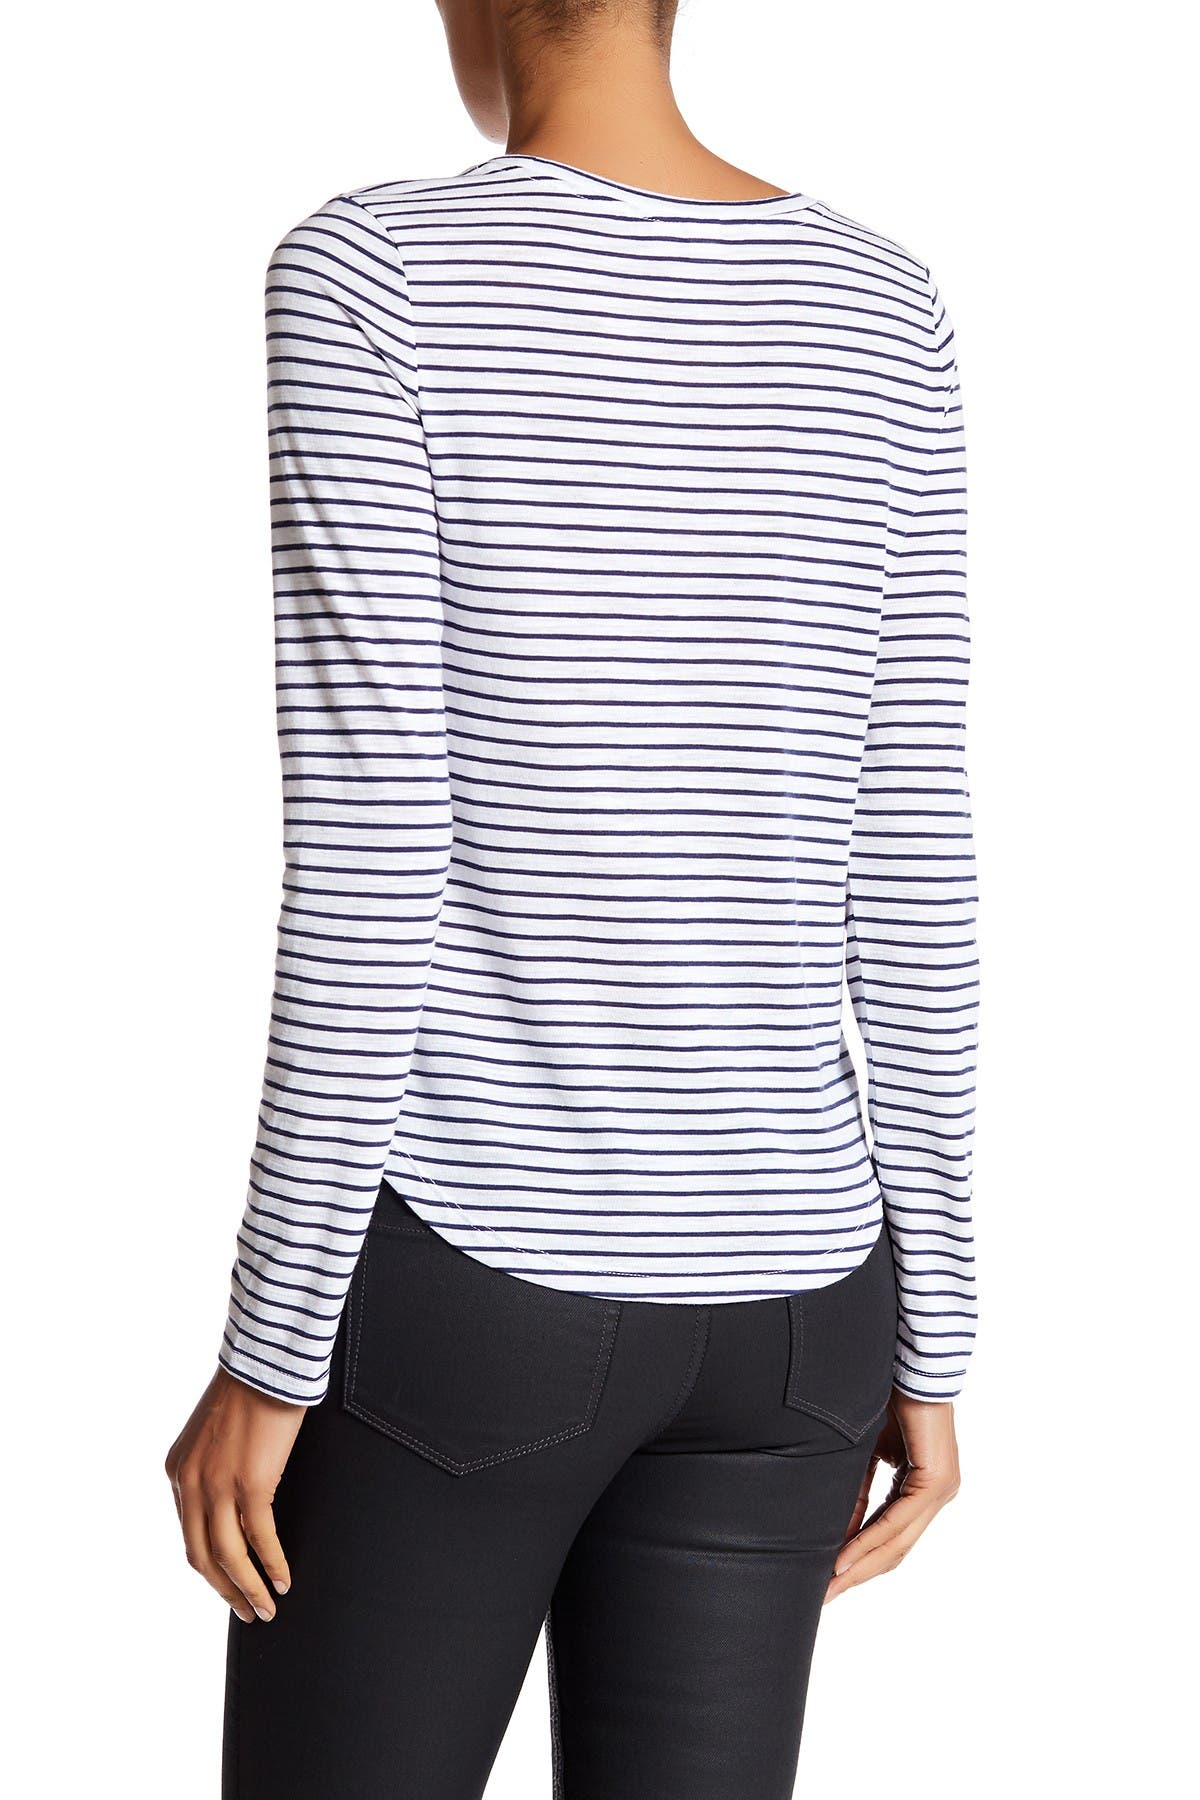 Image of Melrose and Market Long Sleeve Striped Crew Neck Tee